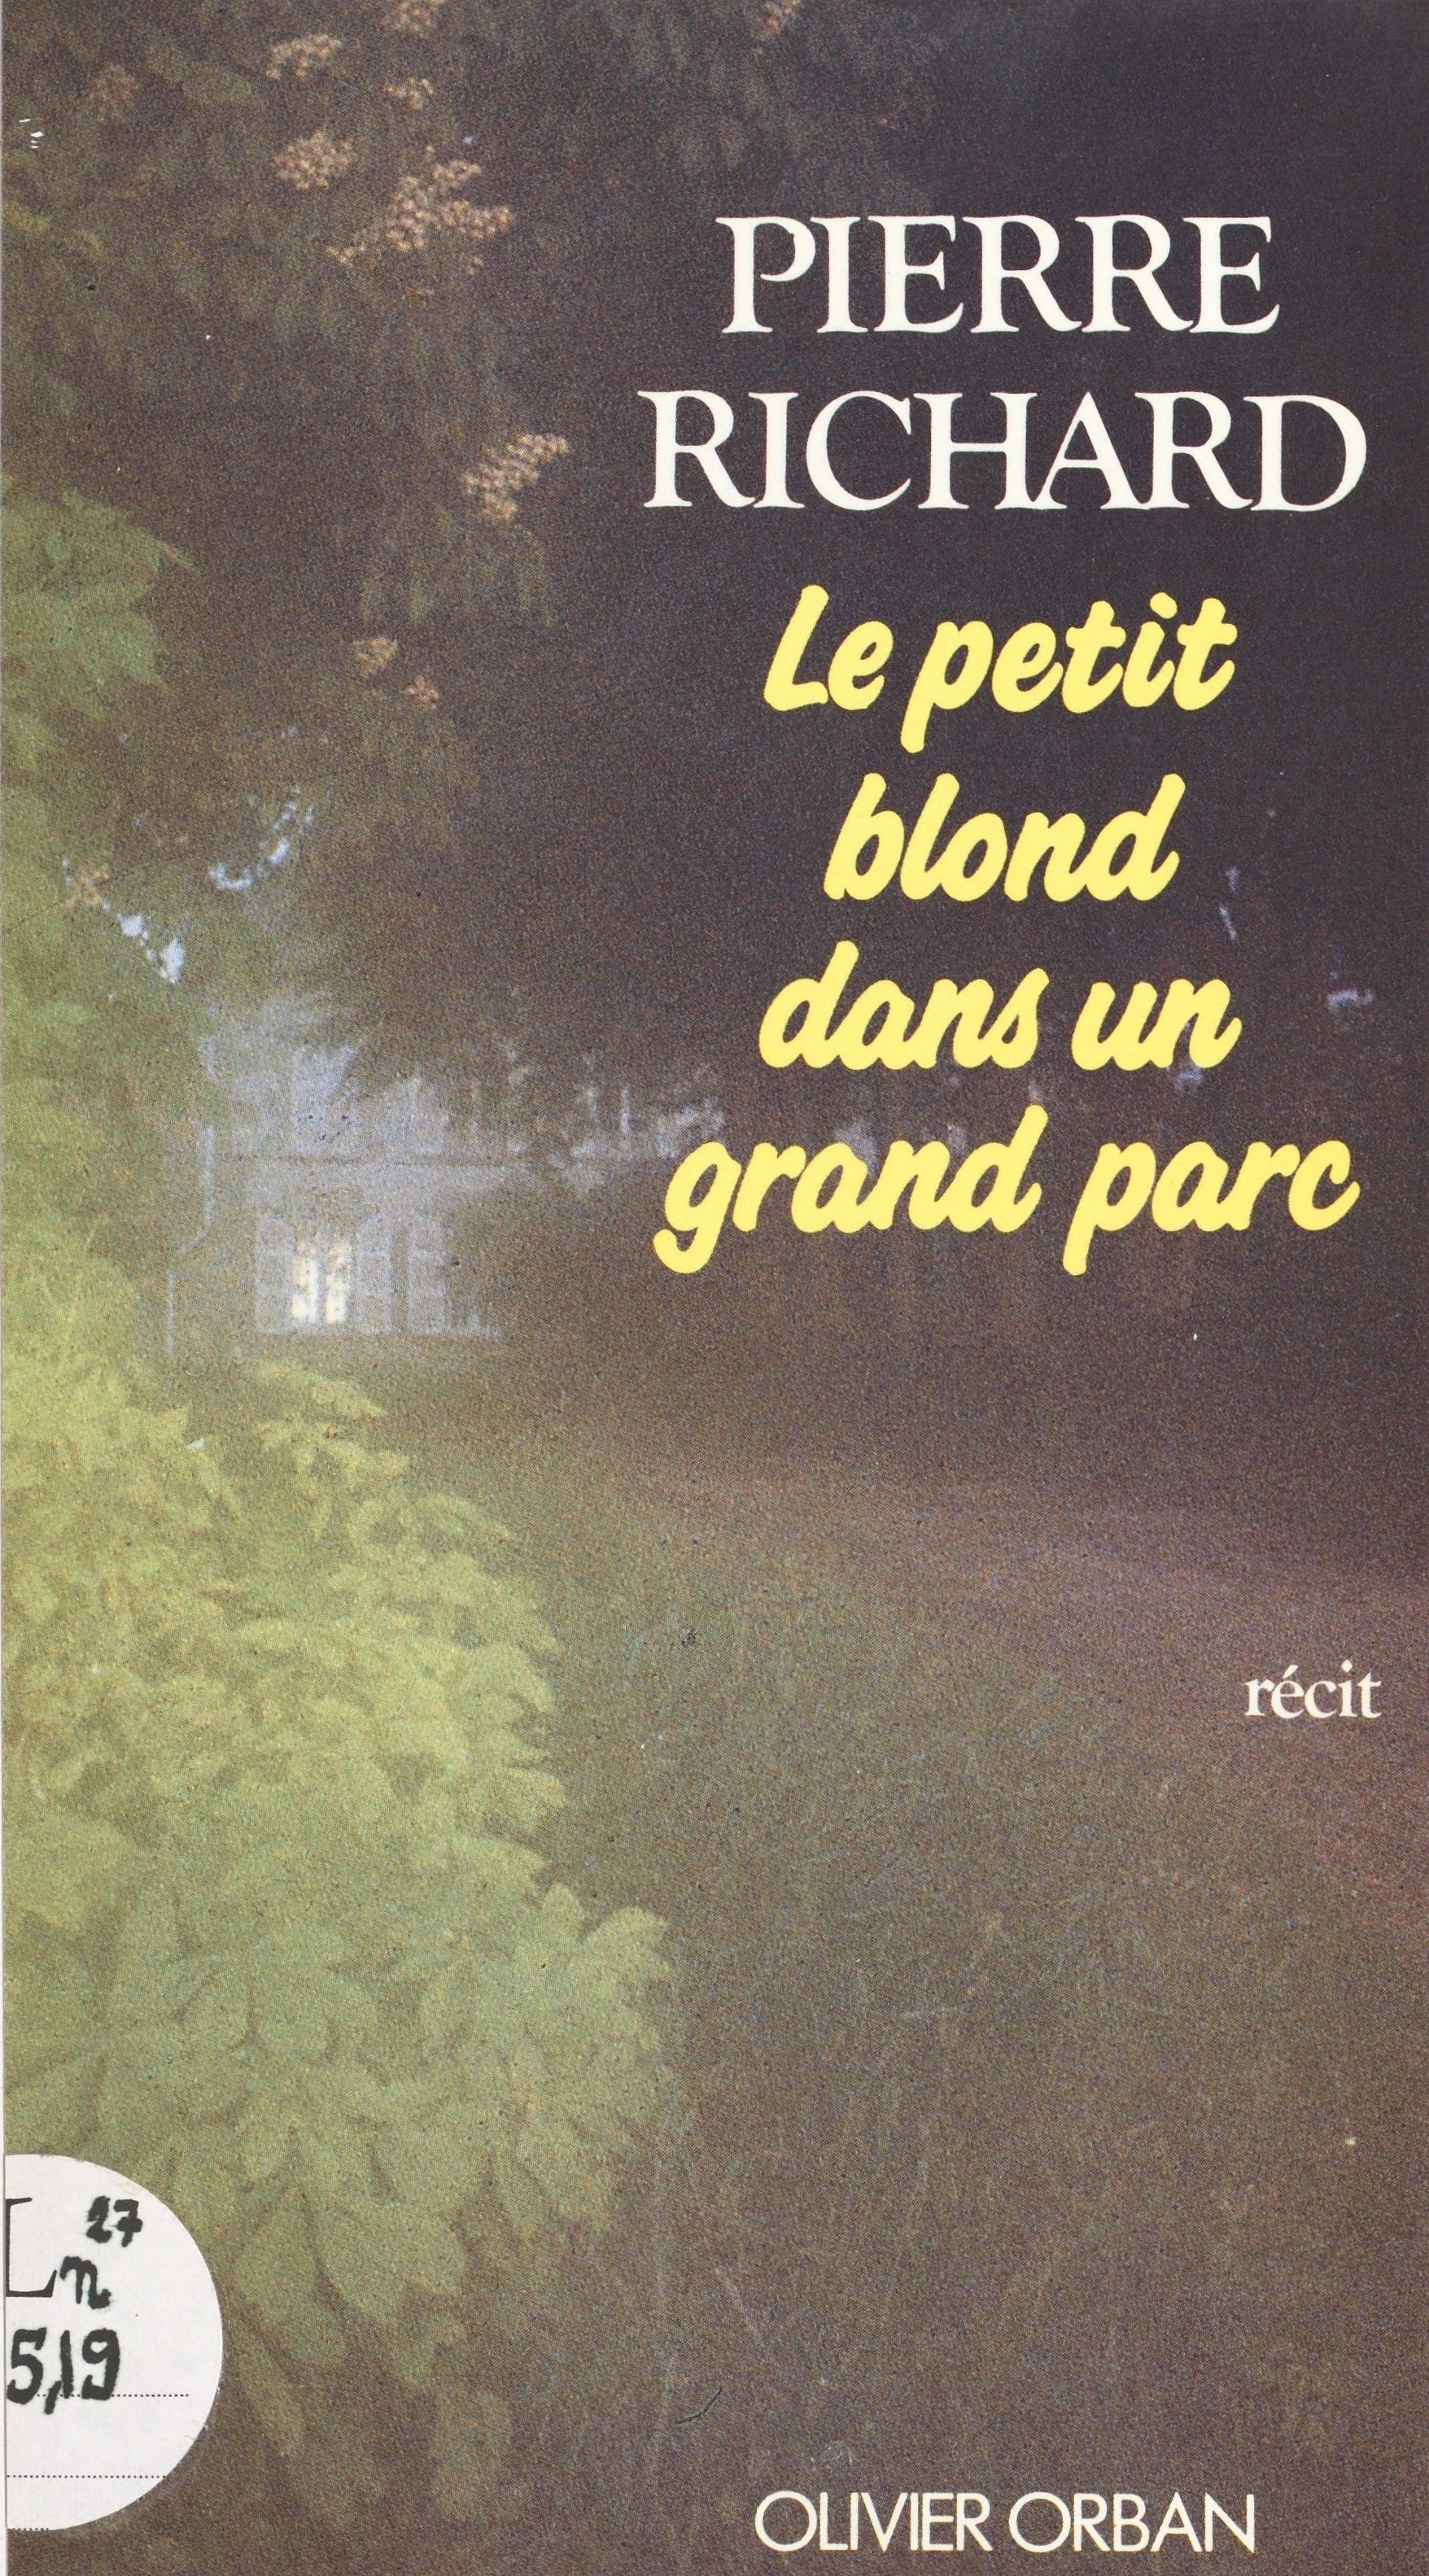 Le petit blond dans un grand parc - Pierre Richard